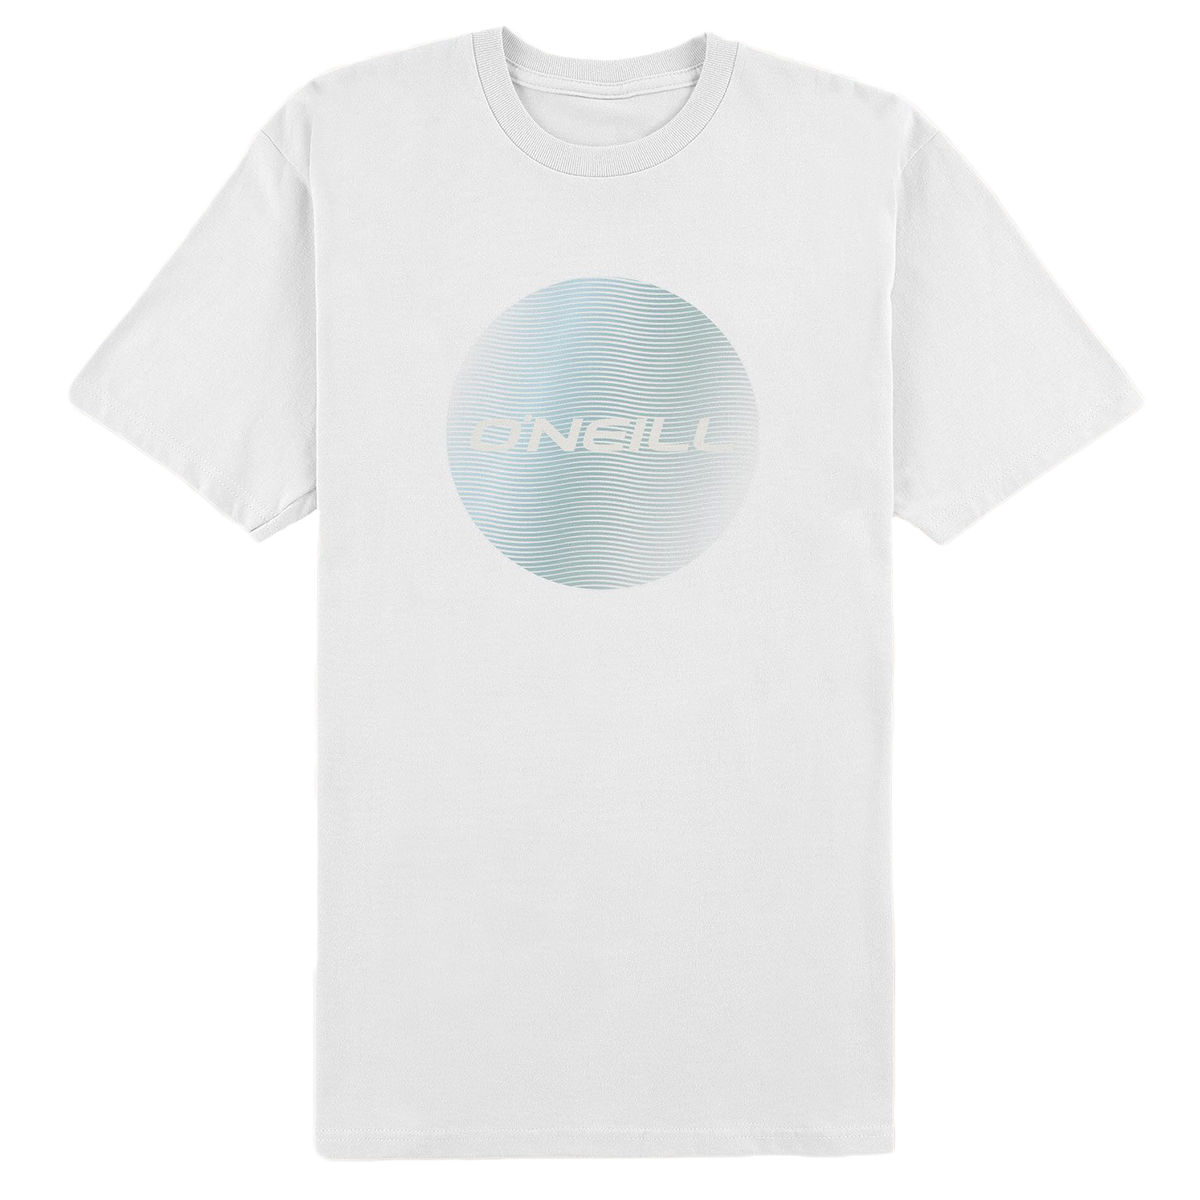 O'neill Men's Squiggy Tee - White, XL